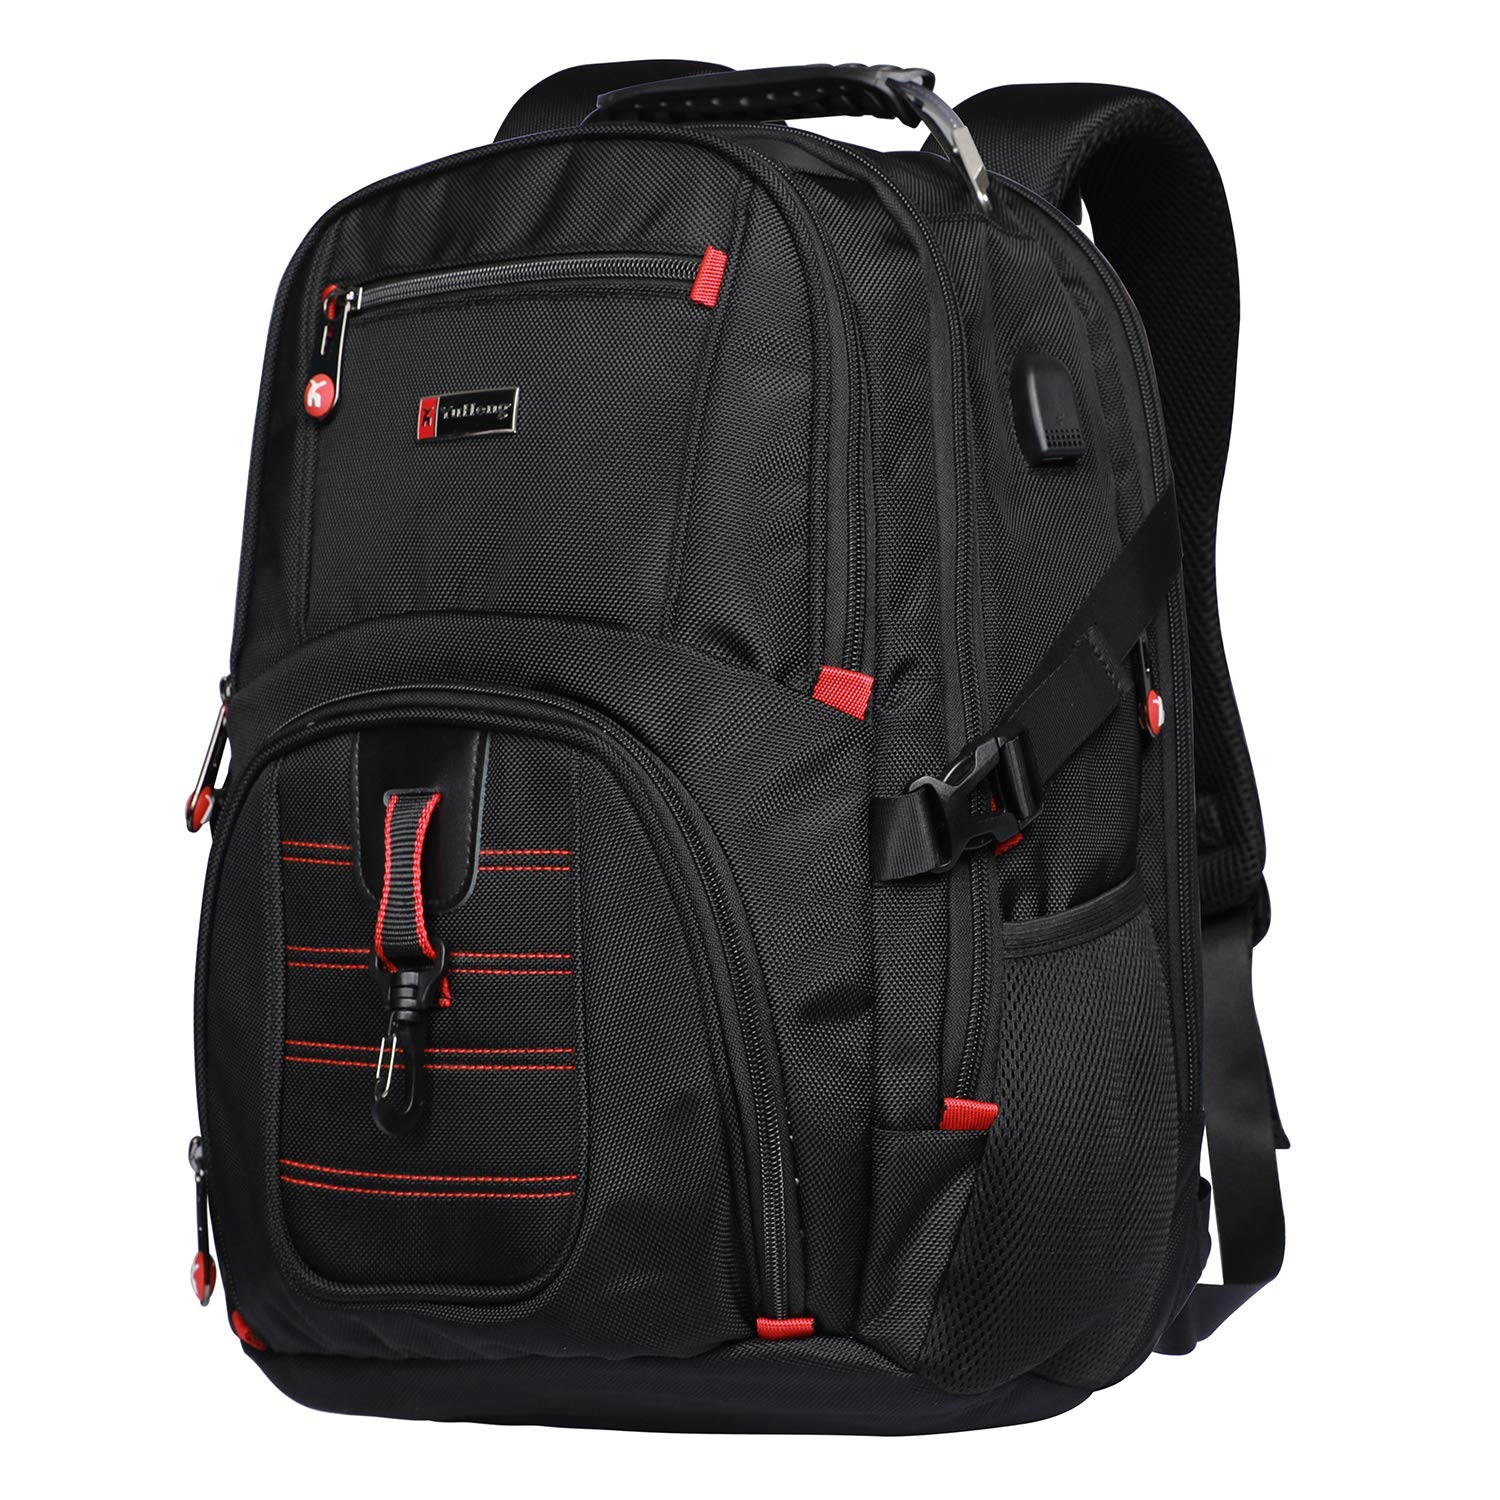 Yuheng Extra Large Backpack Big College 17 Inch Laptop Bag with USB Charging Port Men Women for Travel Business Hiking School Black by Yuheng